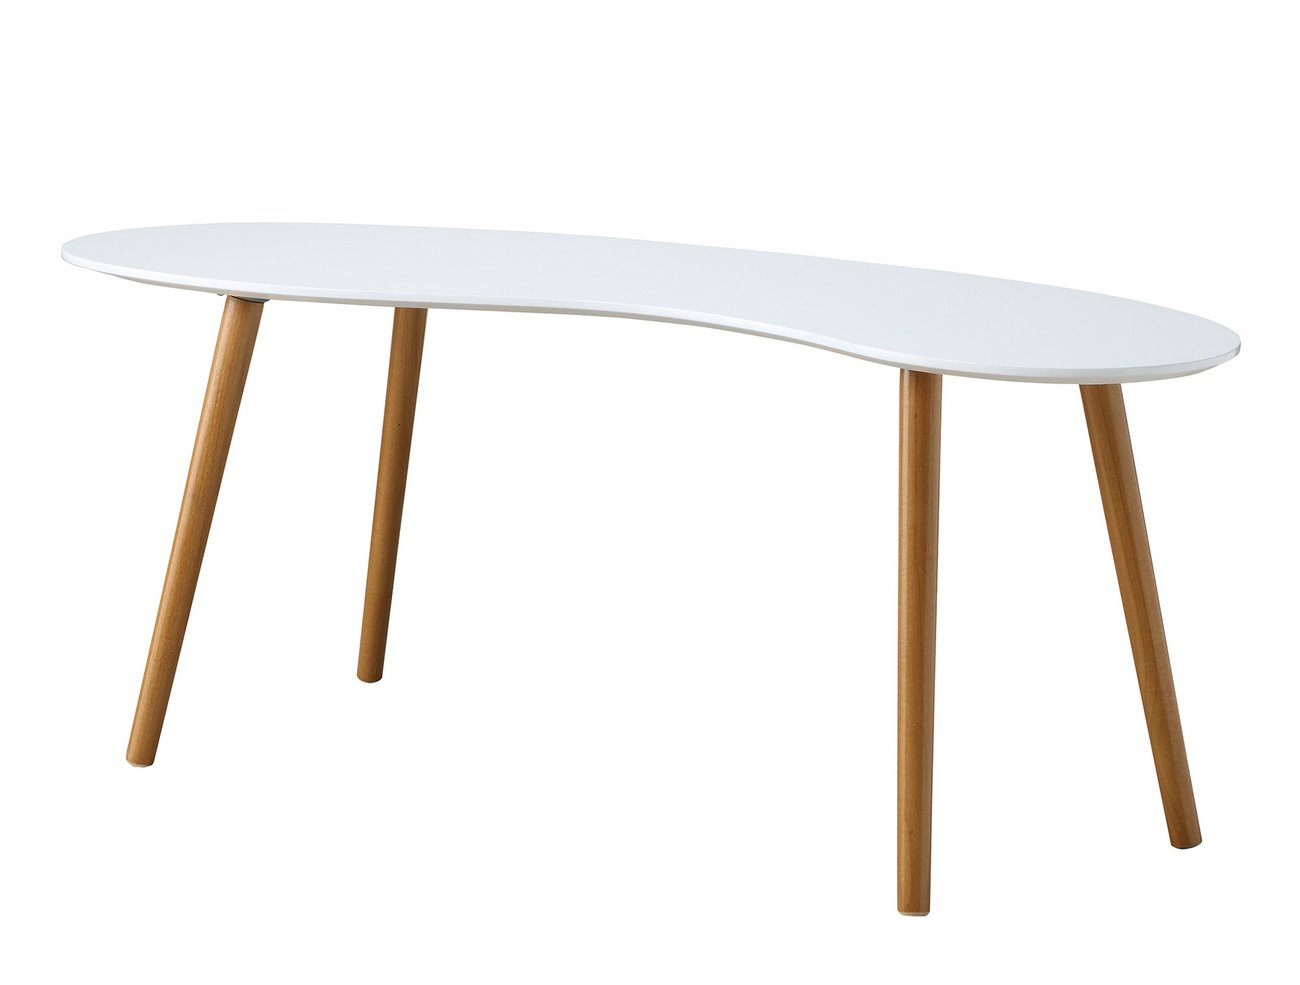 Oslo Bean Shaped Coffee Table In White/Bamboo   Convenience Concepts 203582W